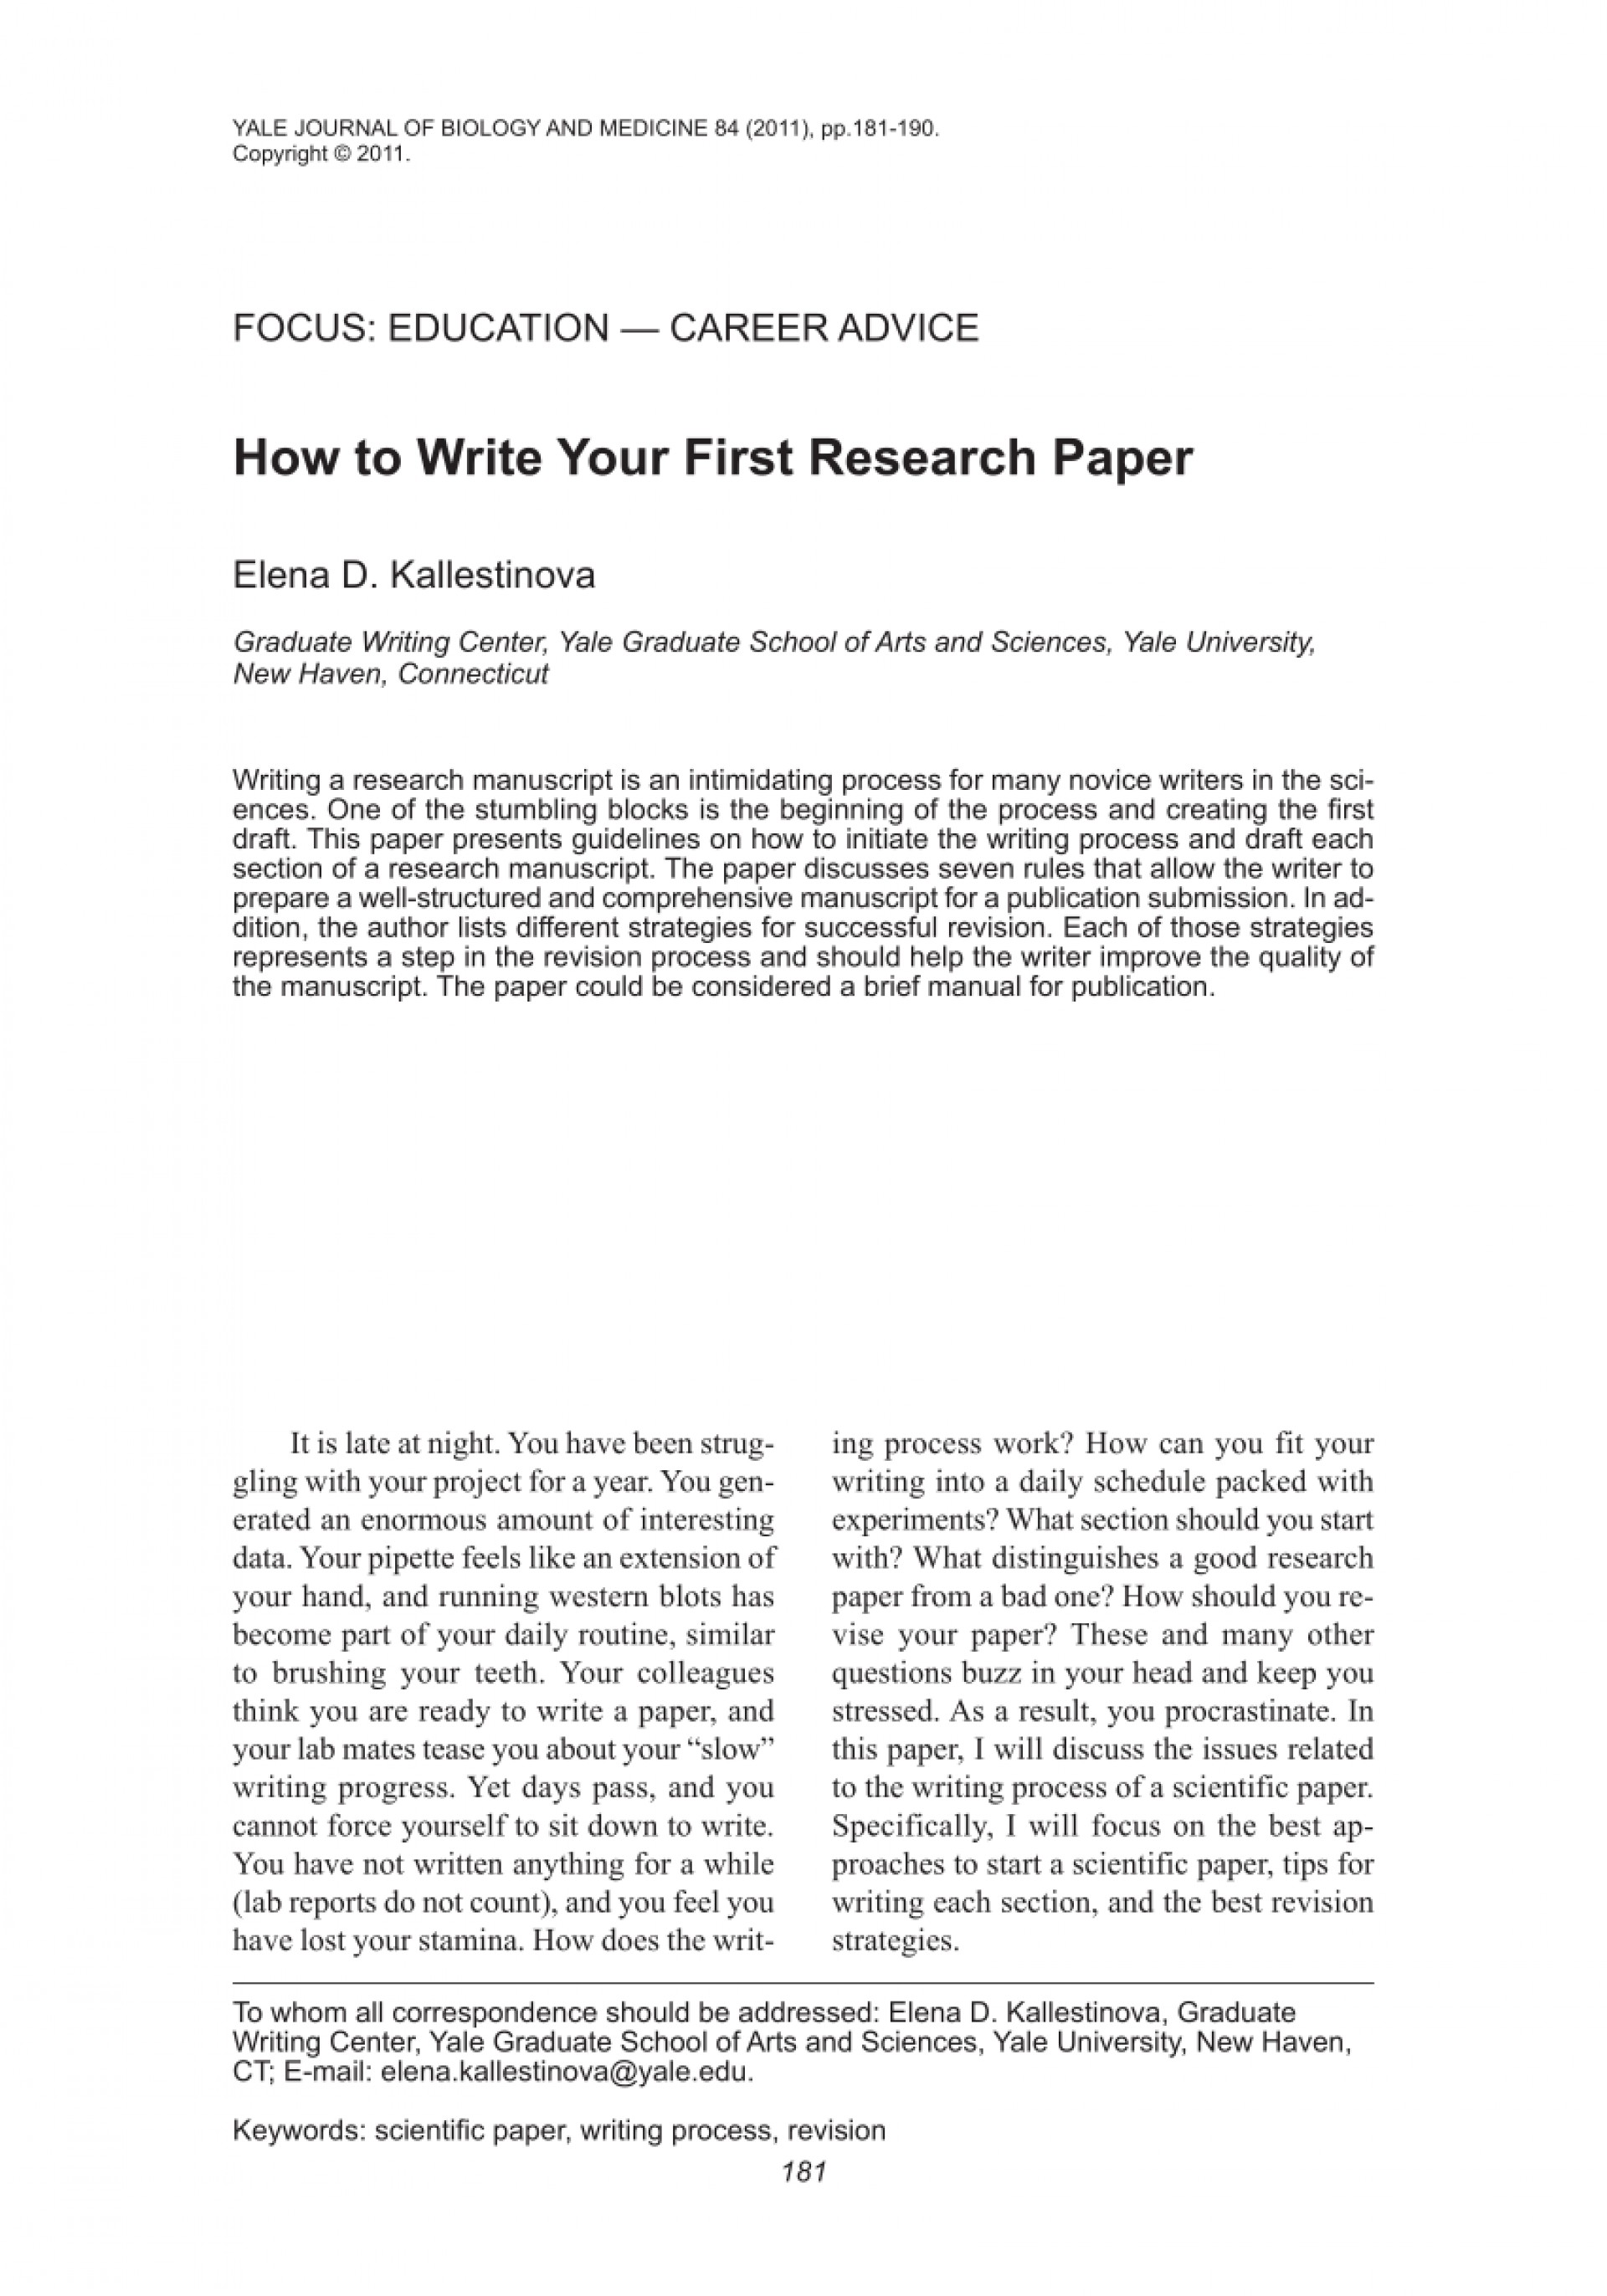 002 Largepreview Research Paper How Top To Cite A Website In With No Author Your Apa Starting Words 1920